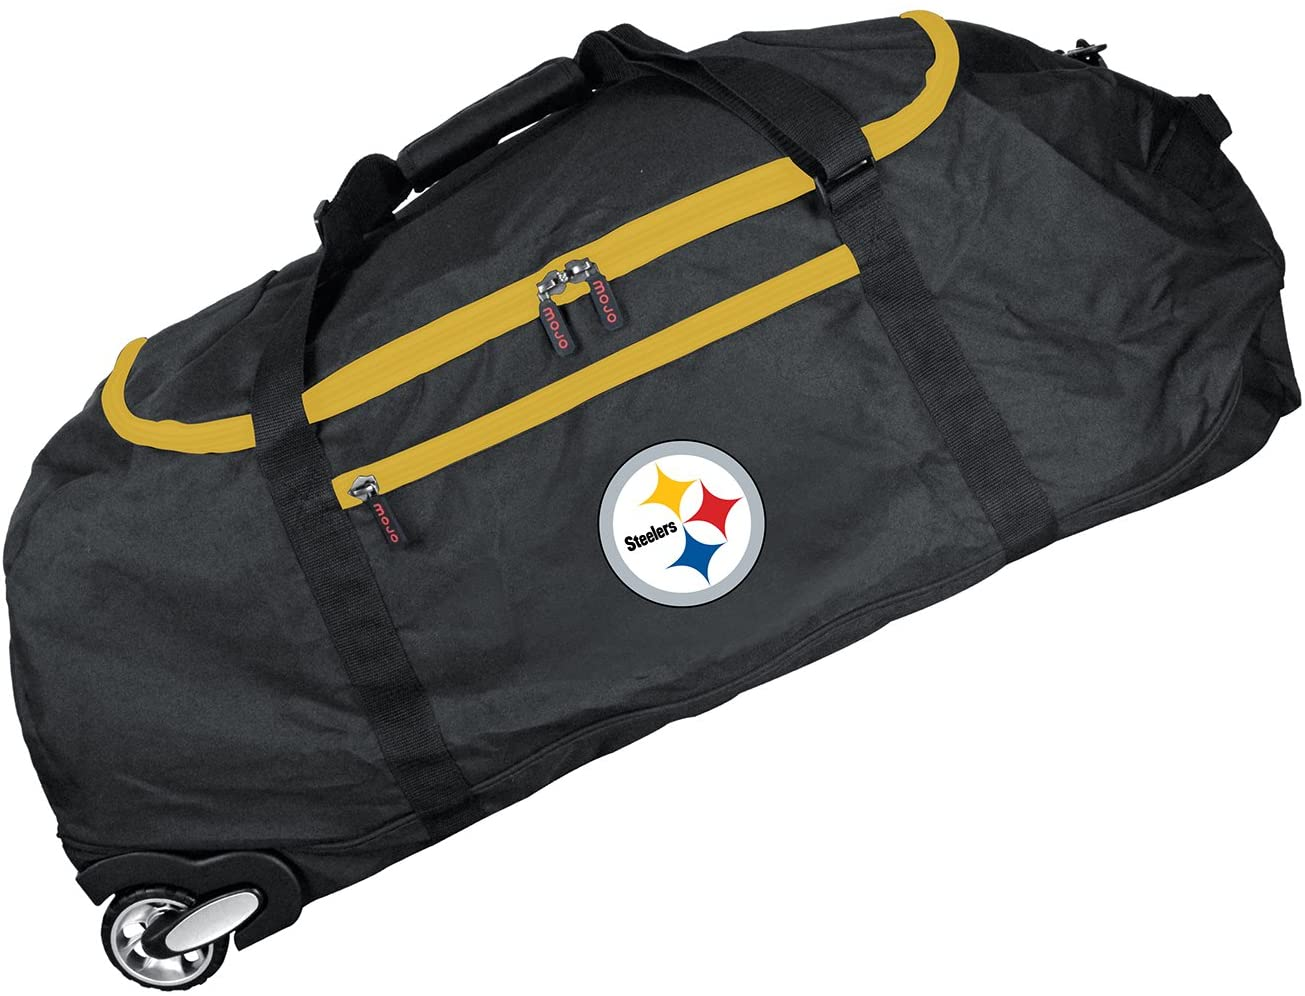 NFL Crusader Collapsible Duffel, 36-inches